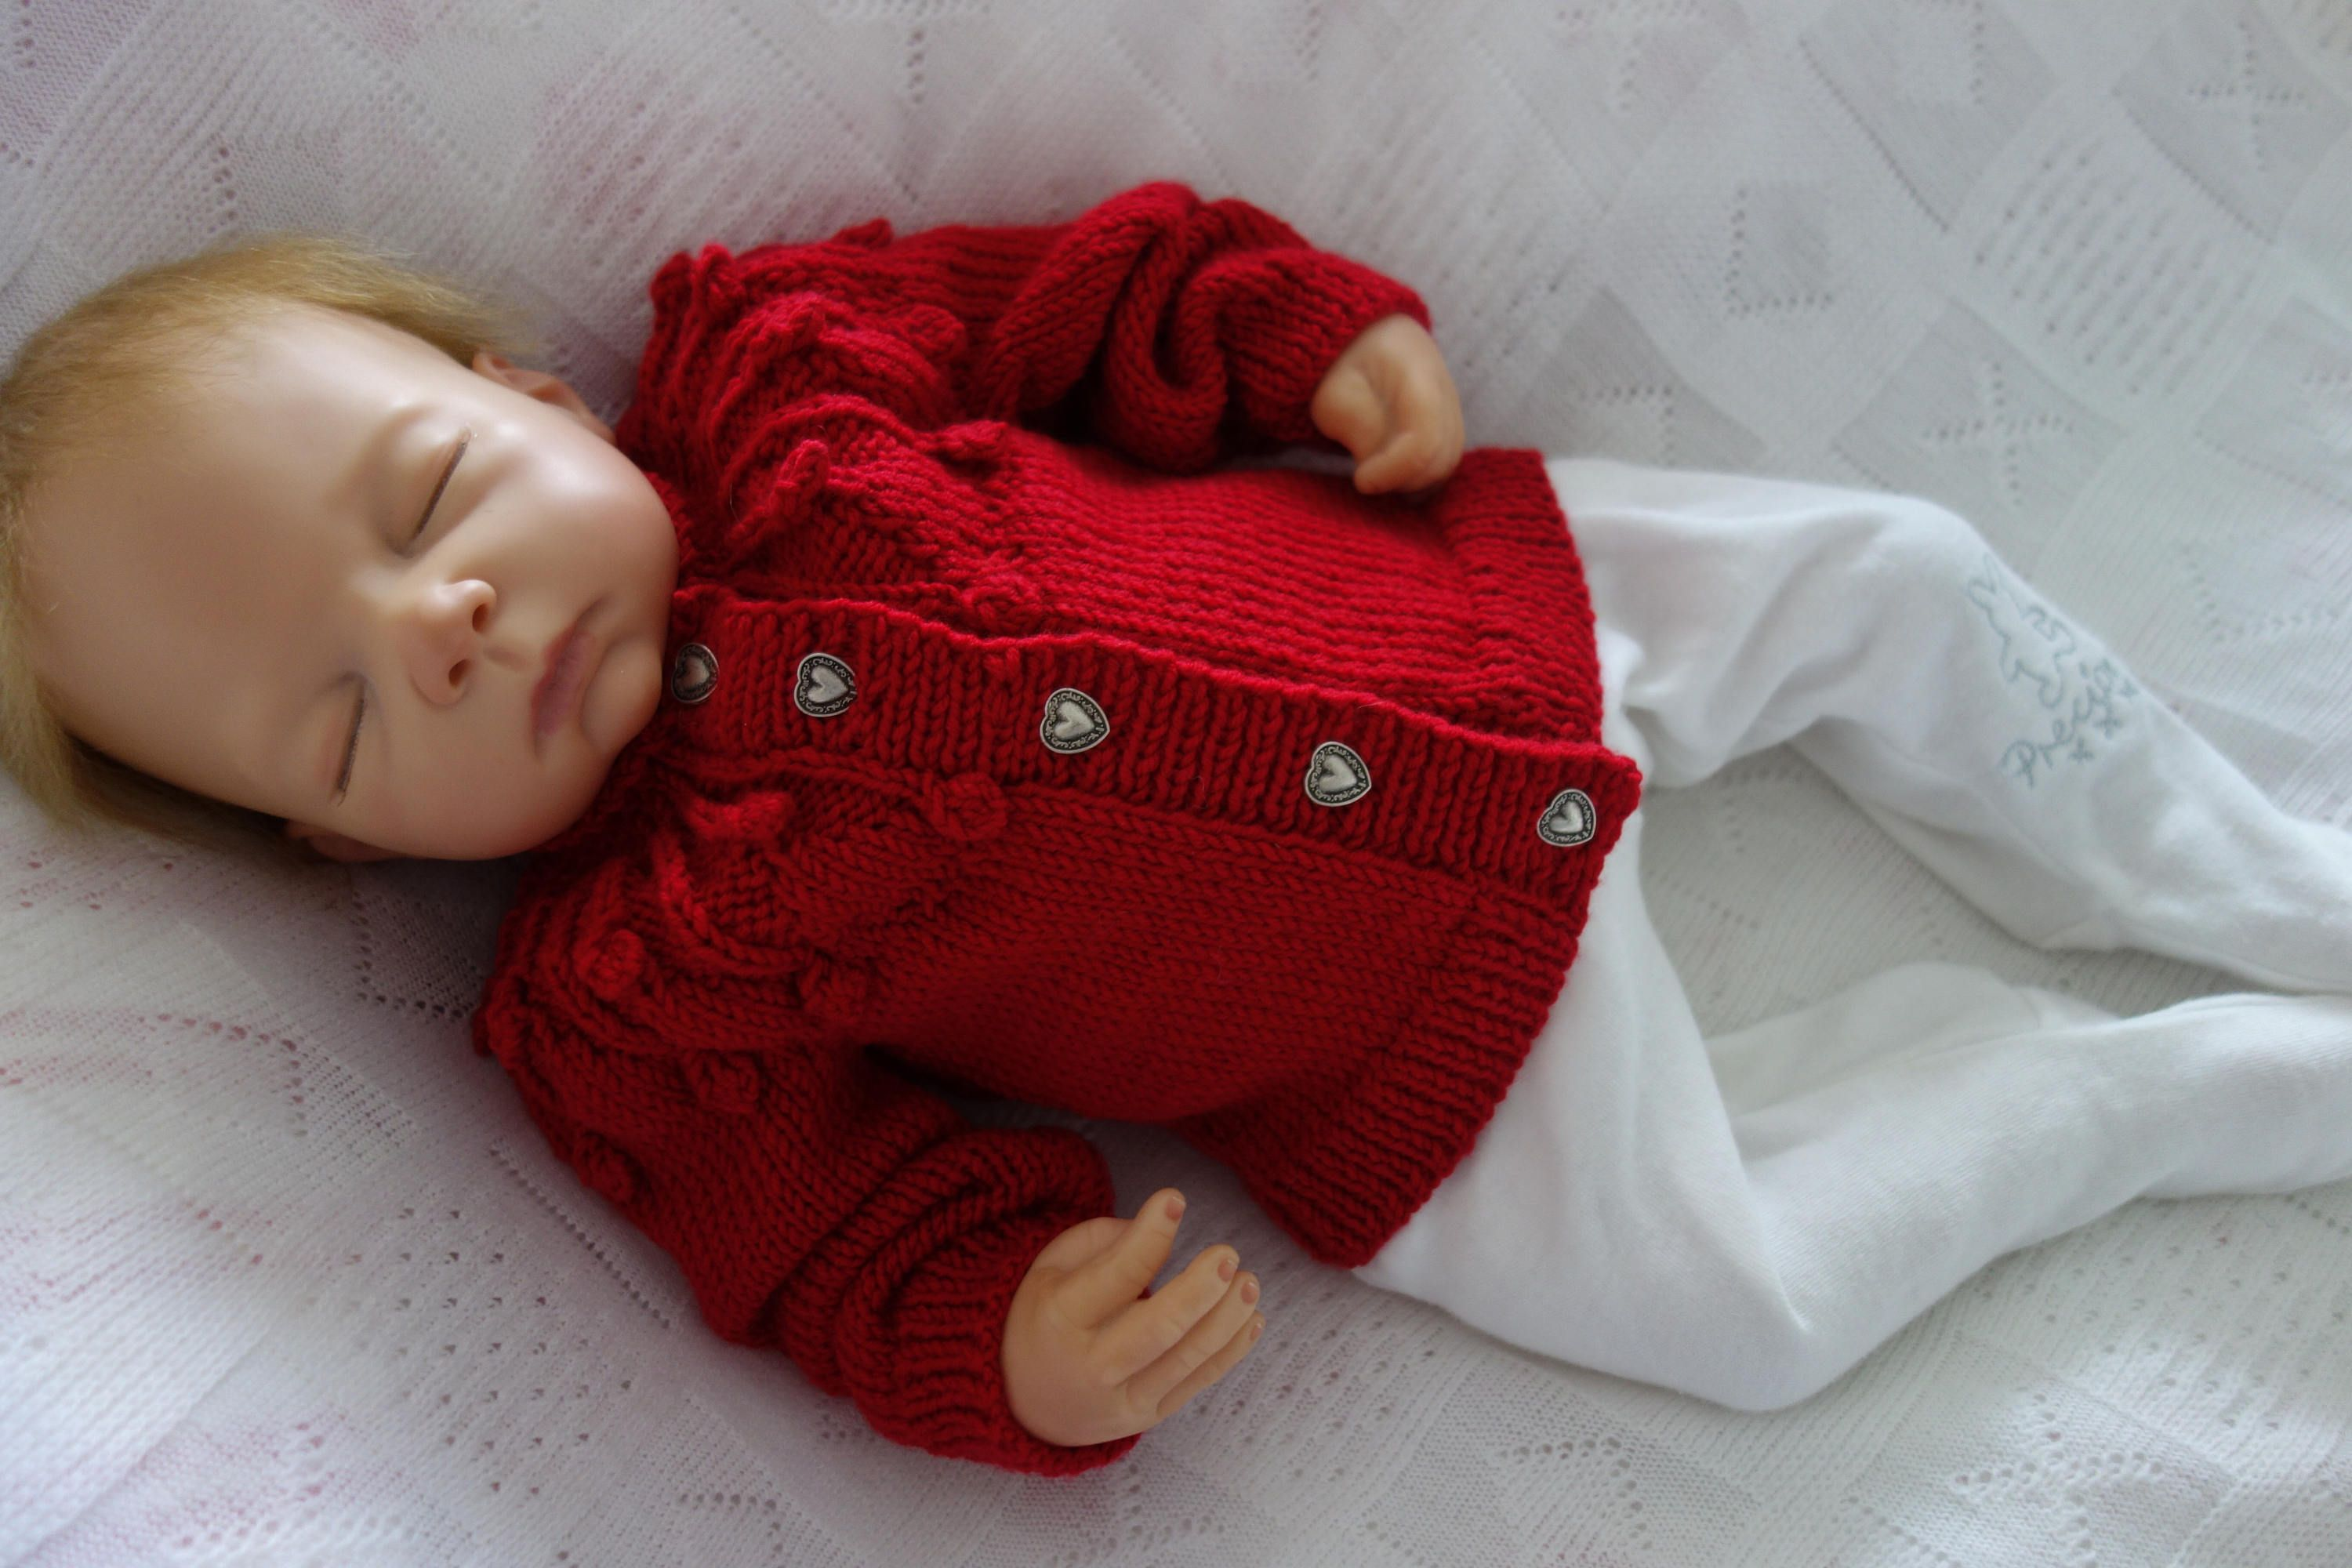 acb313ed3 Hand knitted in Pure 100% Merino wool baby cardigan sweater in red ...